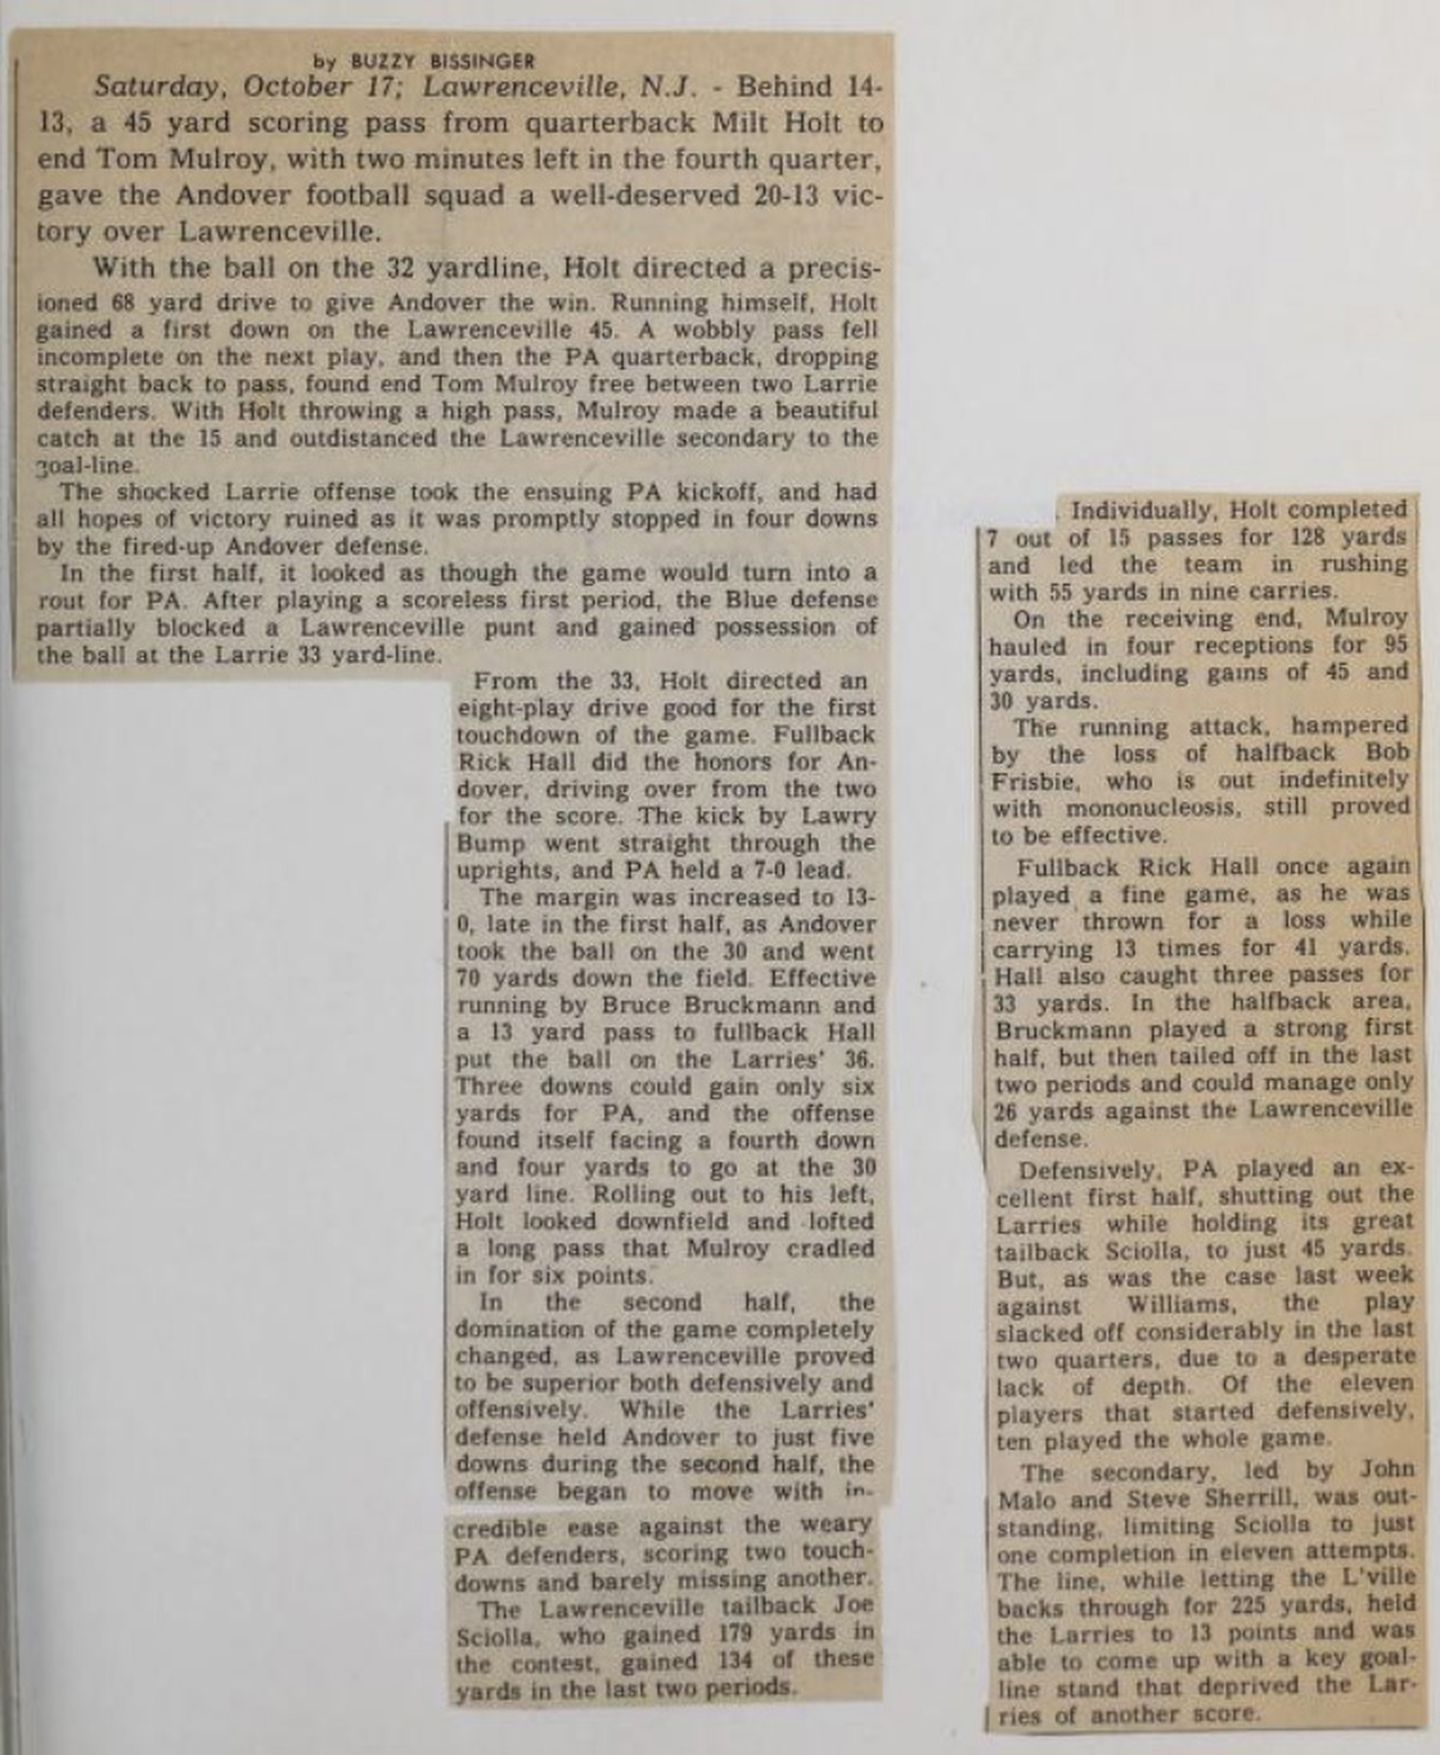 """A Phillipian article by Buzz Bissinger about the Lawrenceville game. """"With the ball on the 32 yardline, Holt directed a precisioned 68 yard drive to give Andover the win,"""" Bissinger wrote."""